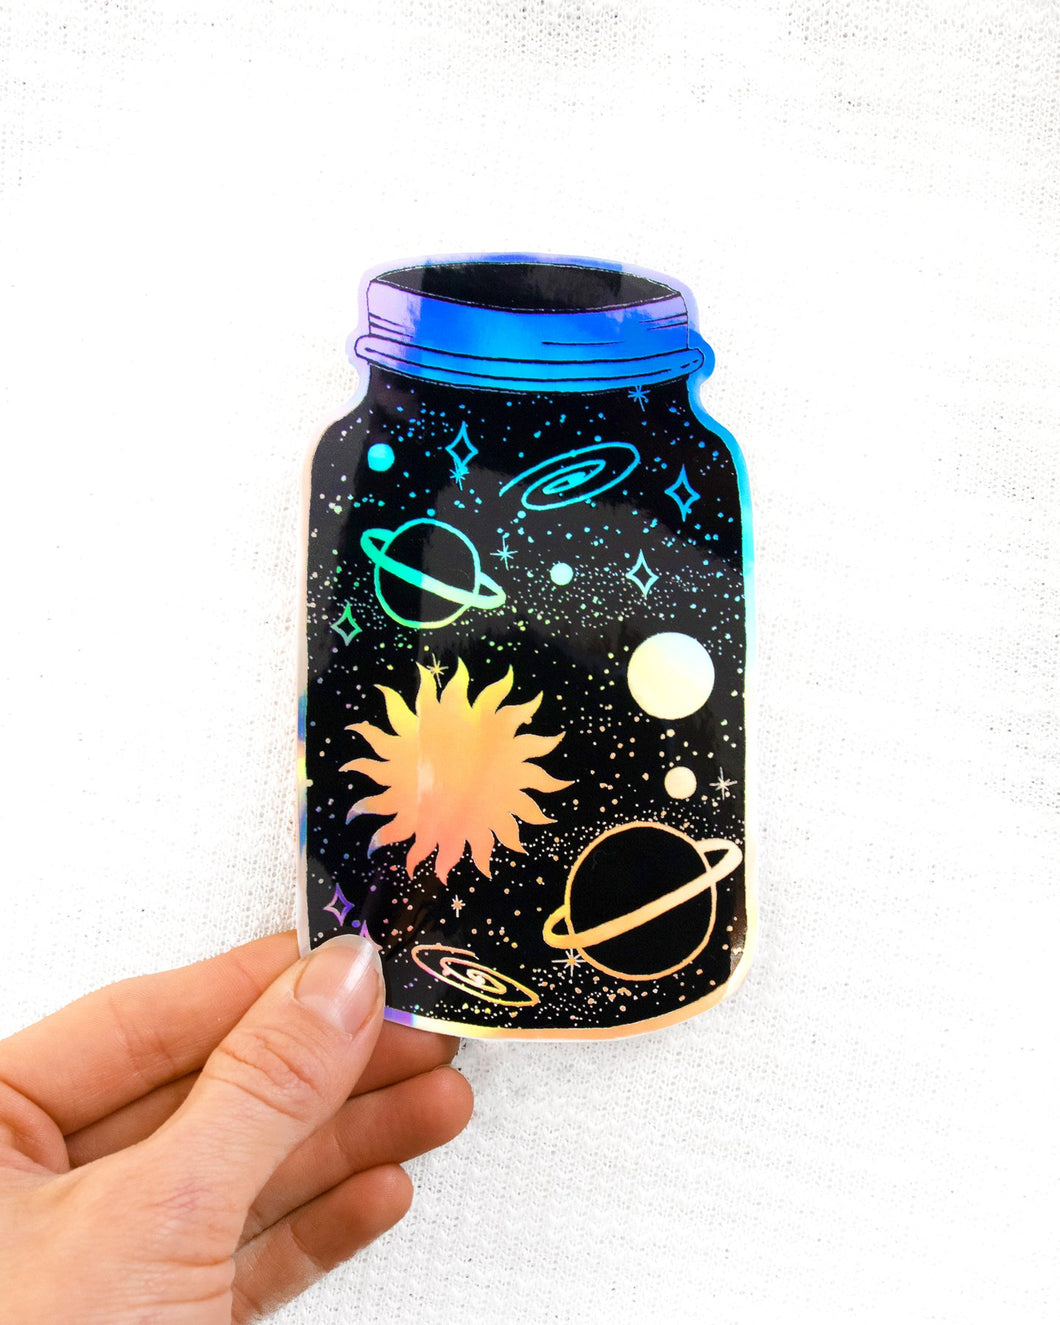 Dreamy Moons - Universe In A Jar Holo Sticker